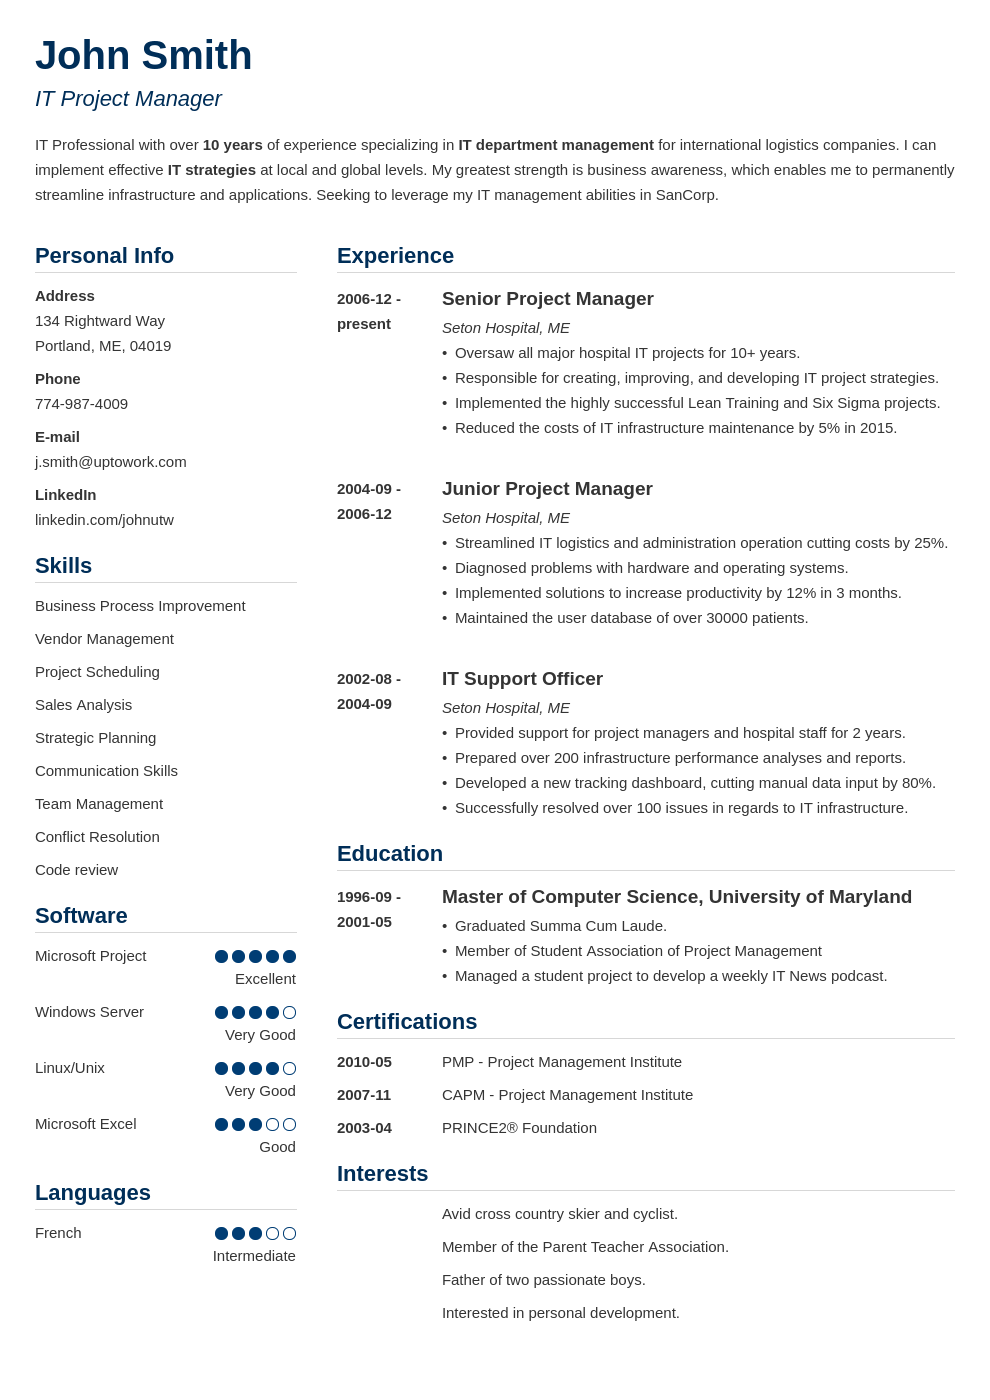 a resume template - Thevillas.co